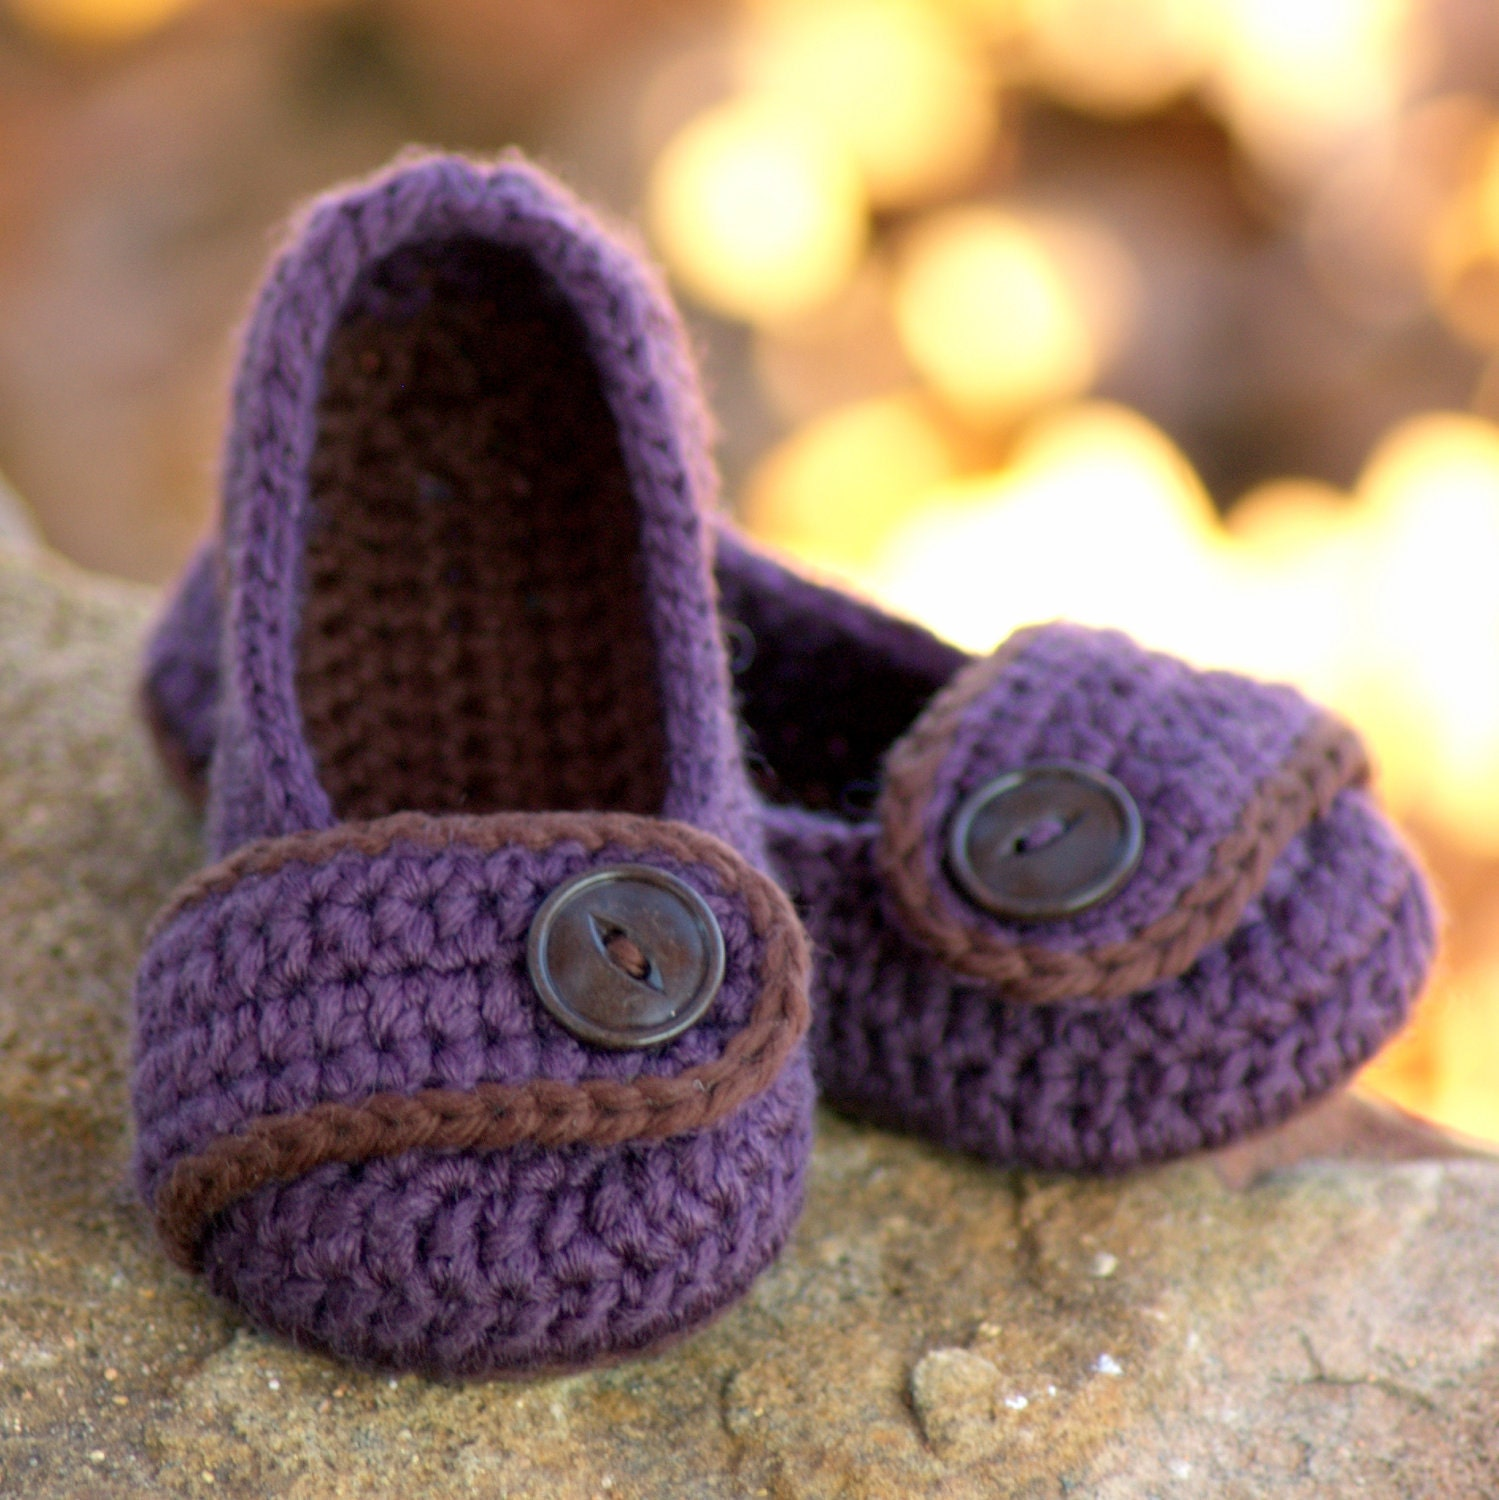 Crochet Patterns For Toddlers Slippers : CROCHET PATTERN 206 Toddler Valerie Slipper Toddler Sizes